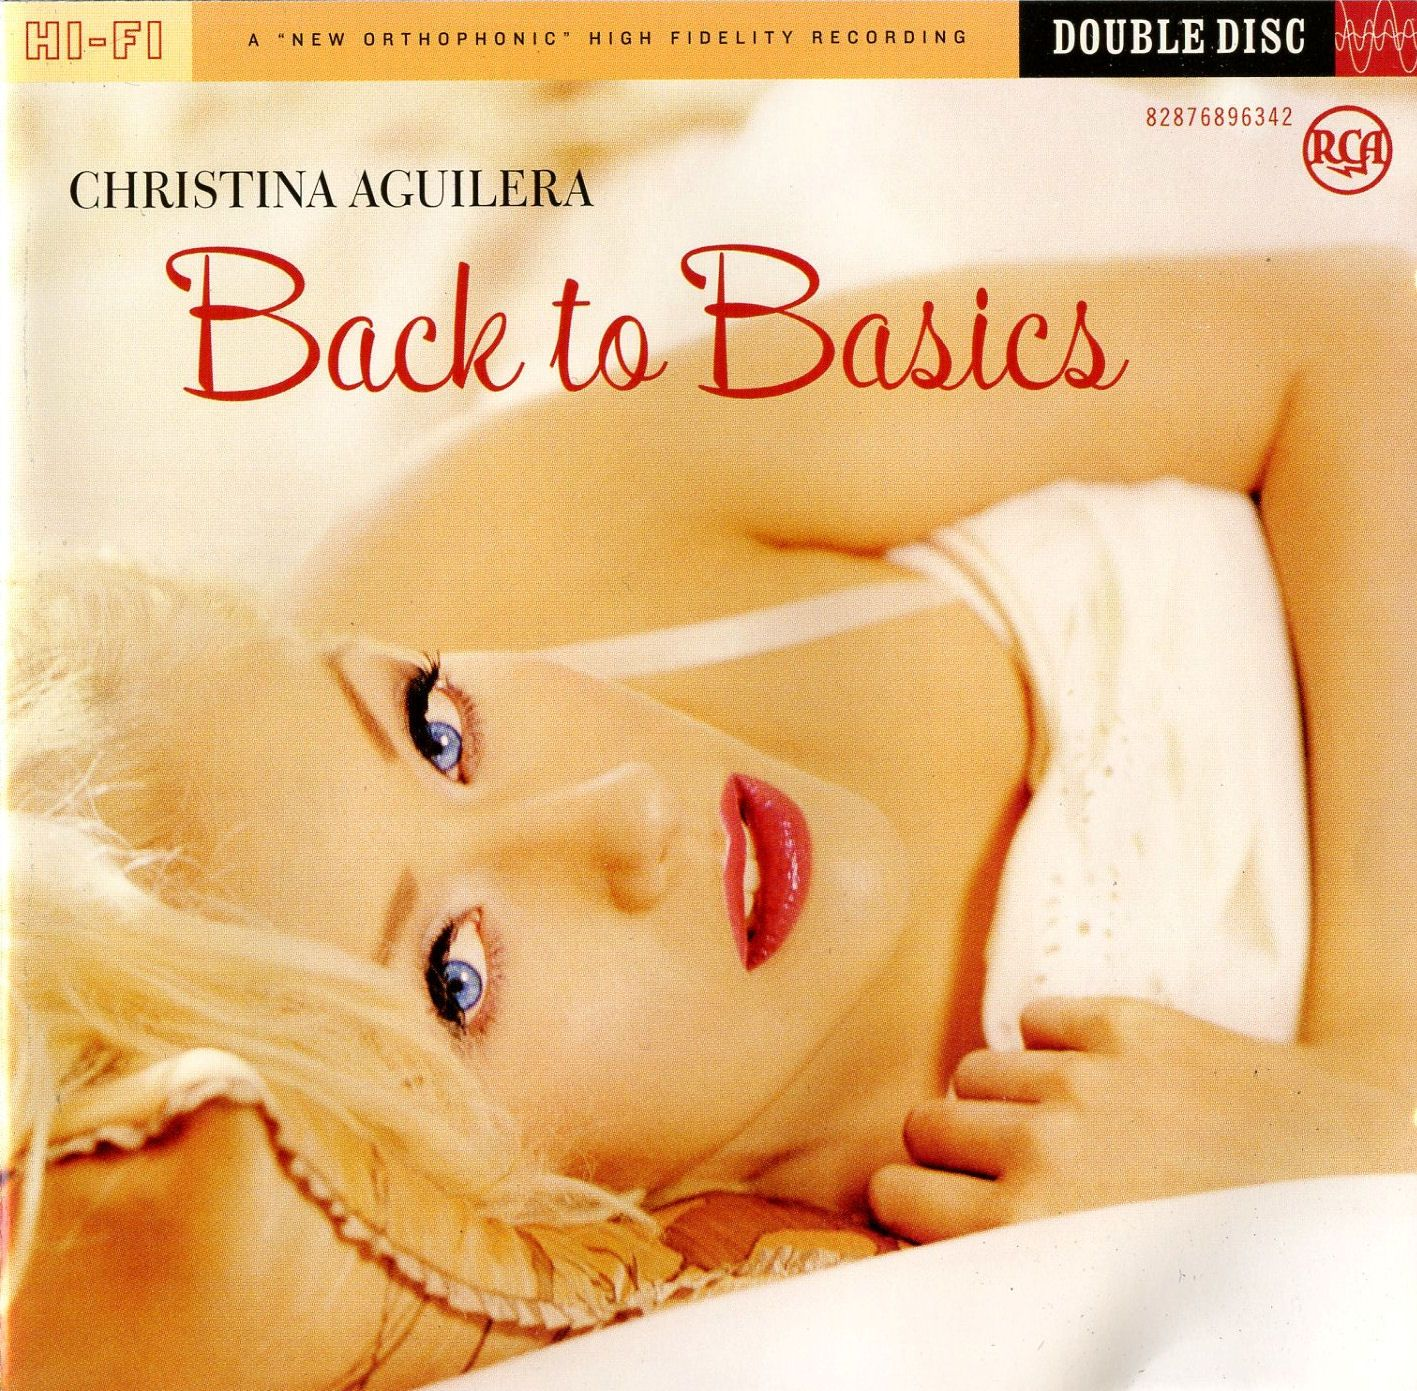 Christina Aguilera - Back To Basics album cover